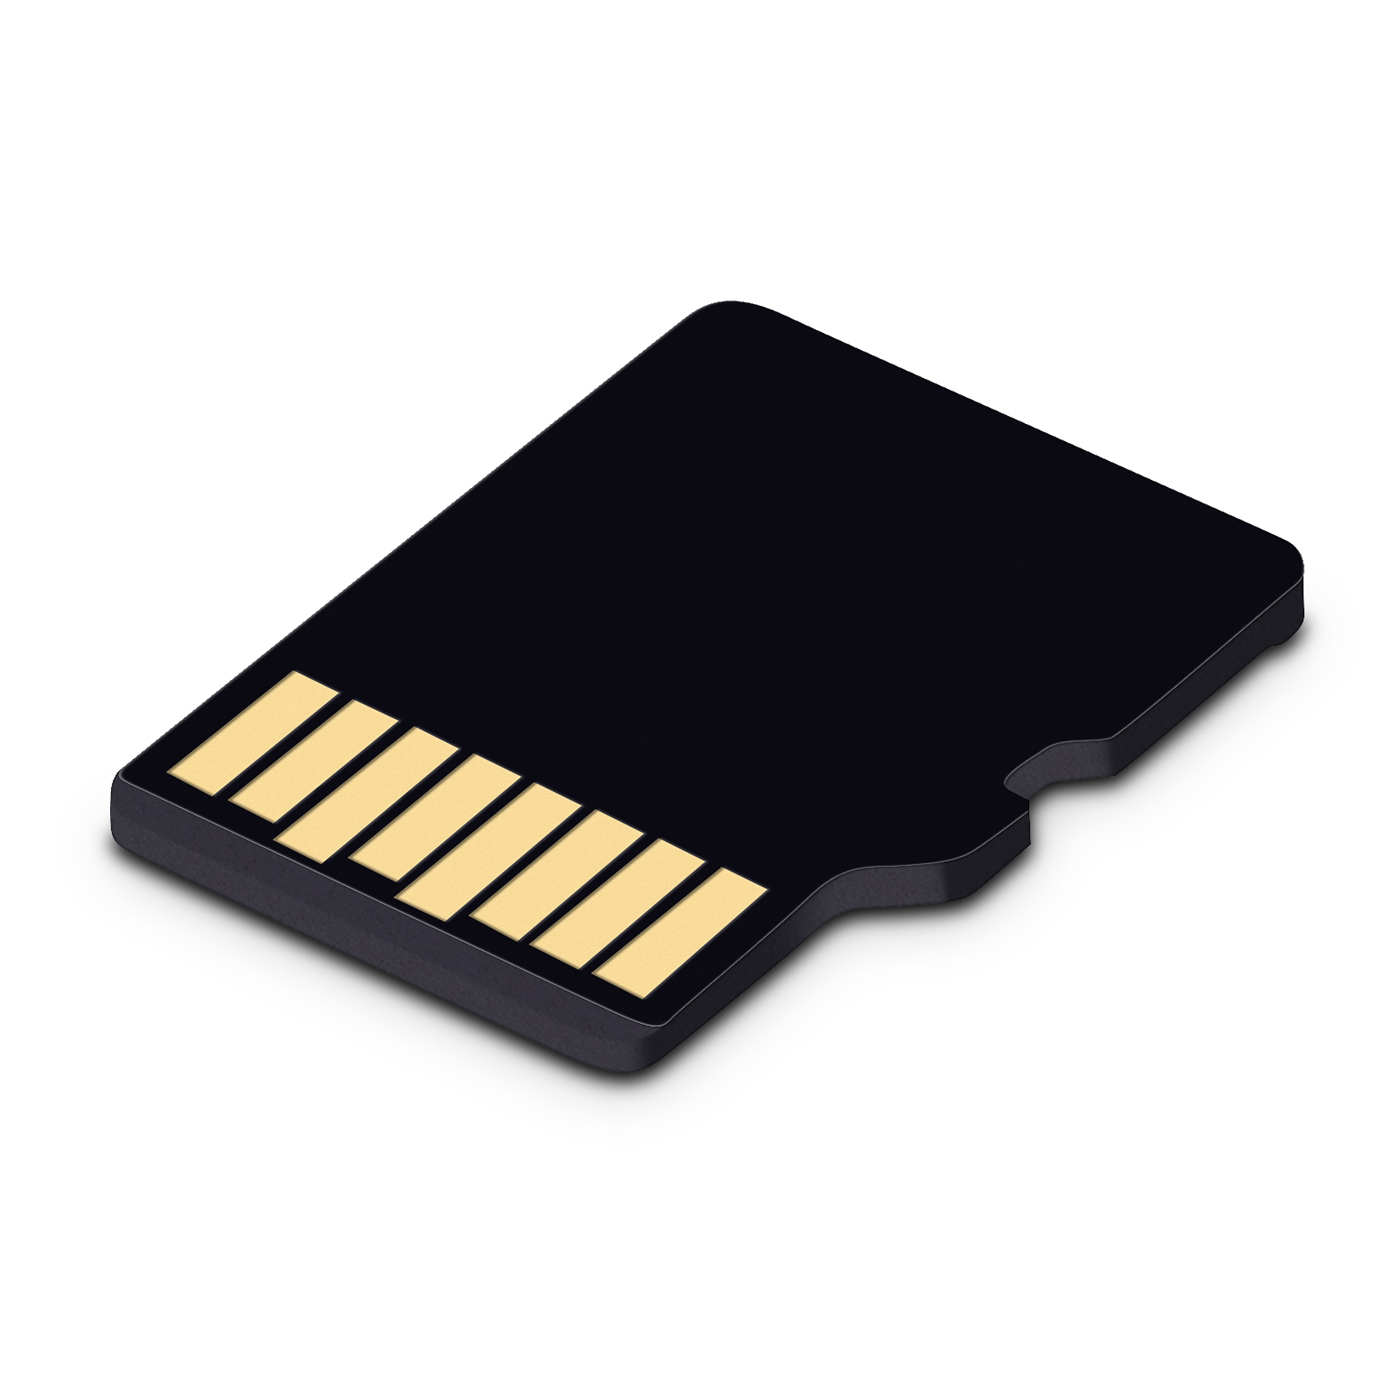 micro sd sdhc sdxc flash memory card with adapter fit to for samsung tablet pc ebay. Black Bedroom Furniture Sets. Home Design Ideas